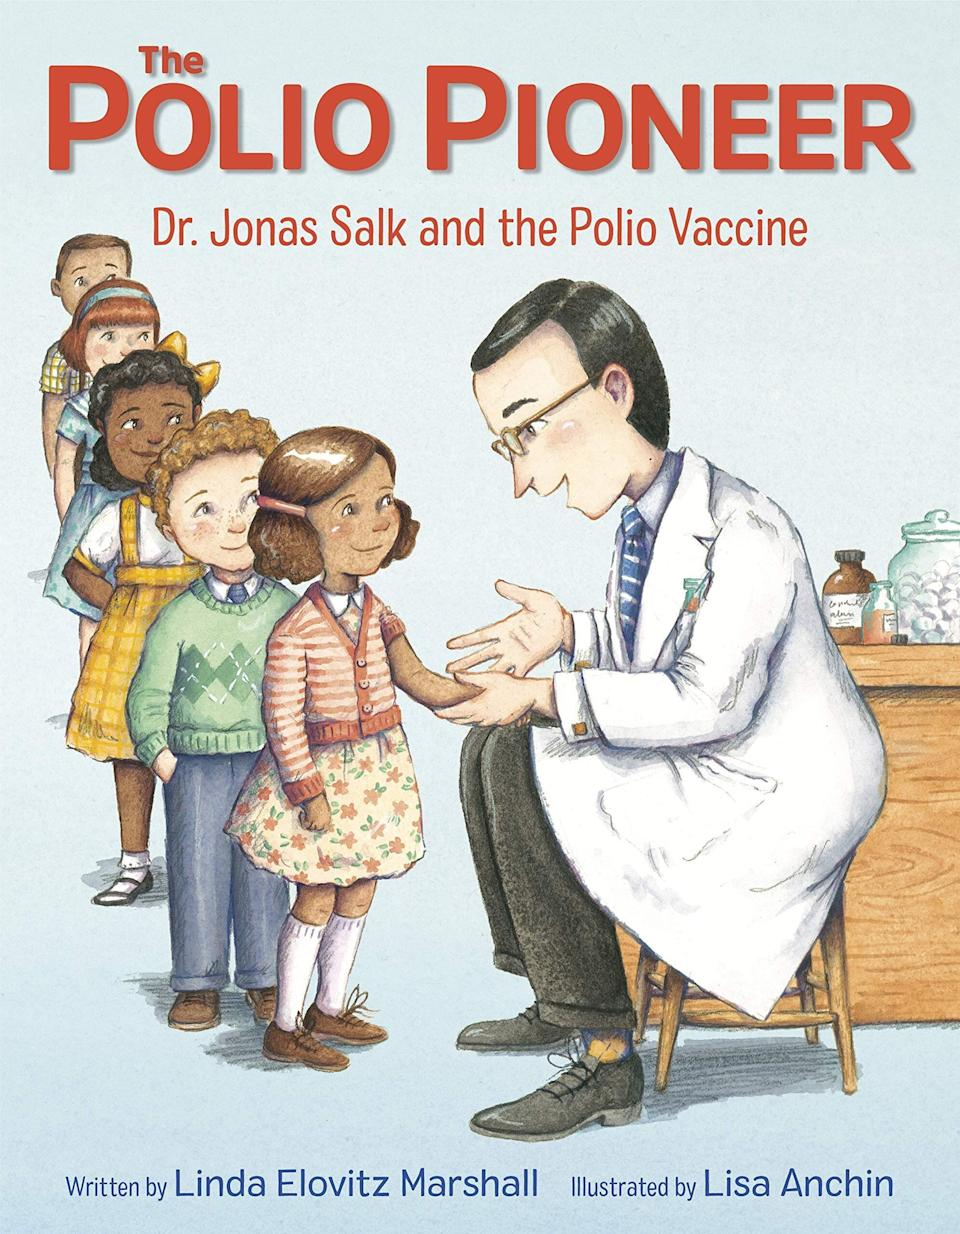 """This book about virologist Jonas Salk offers historical context for the events surrounding the COVID-19 pandemic and the development of vaccines. <i>(Available <a href=""""https://www.amazon.com/Polio-Pioneer-Linda-Elovitz-Marshall/dp/0525646515"""" target=""""_blank"""" rel=""""noopener noreferrer"""">here</a>.)</i>"""